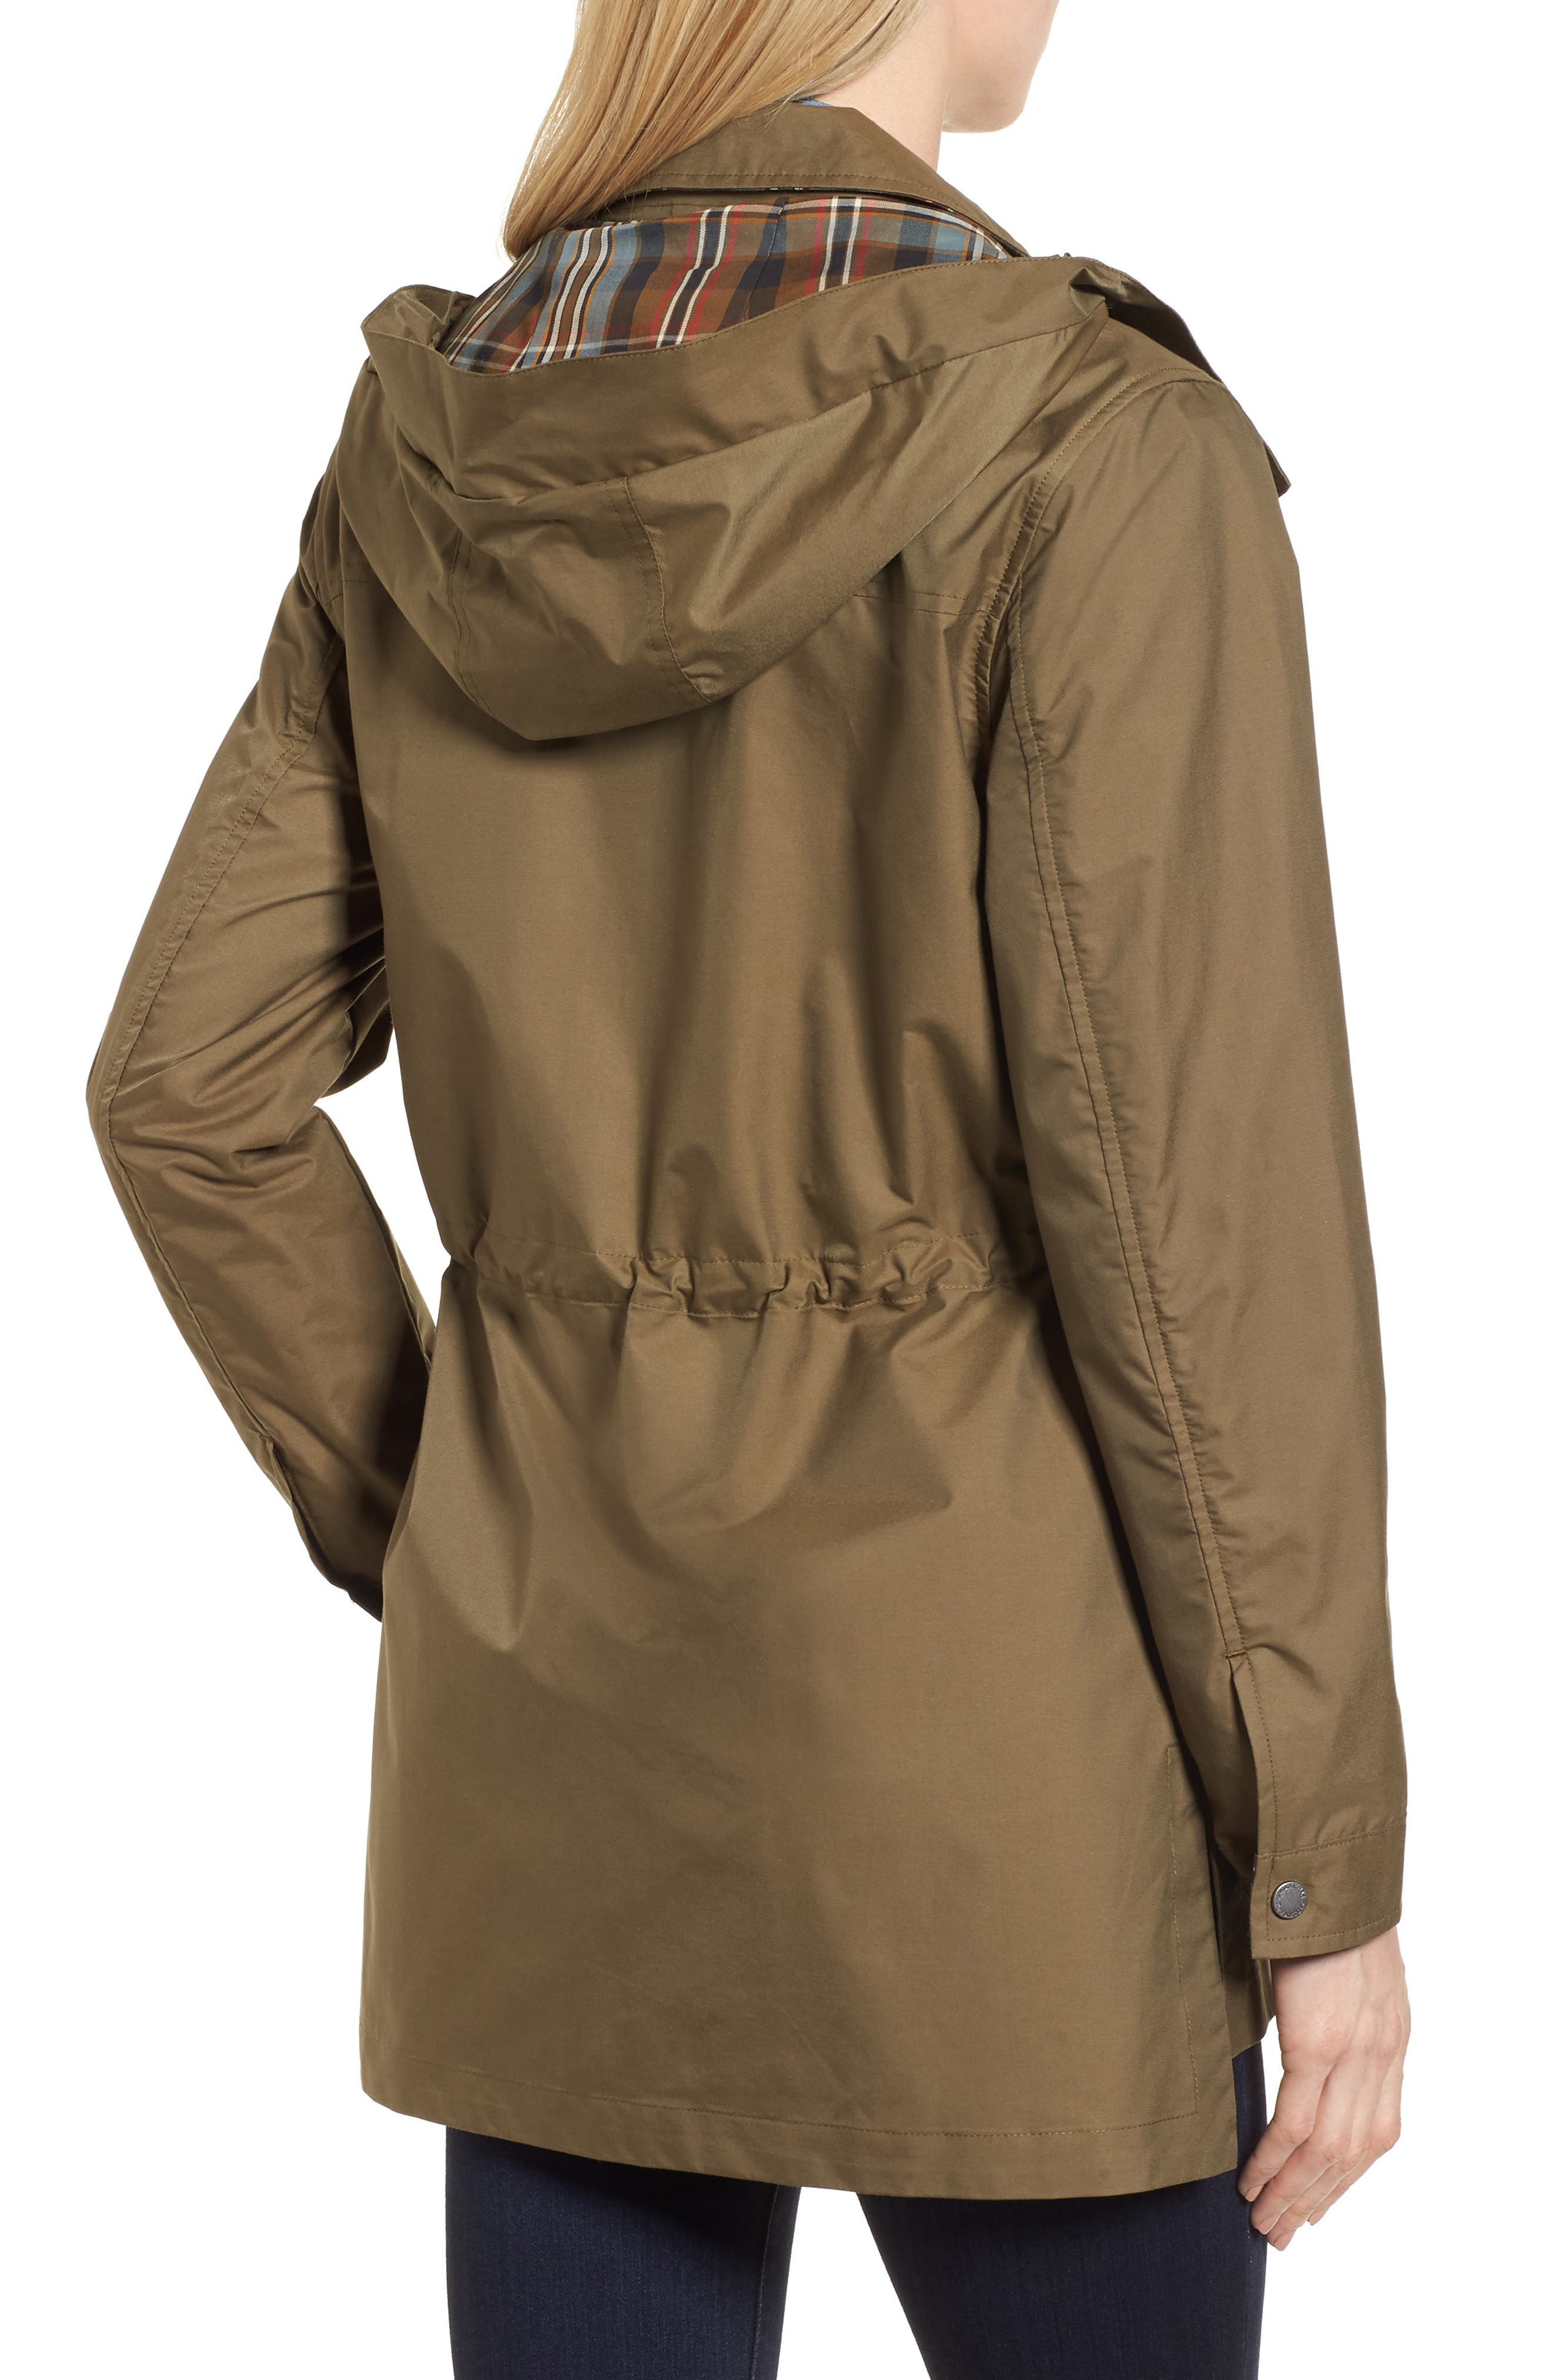 Taylor Utility Jacket,                             Alternate thumbnail 2, color,                             Olive